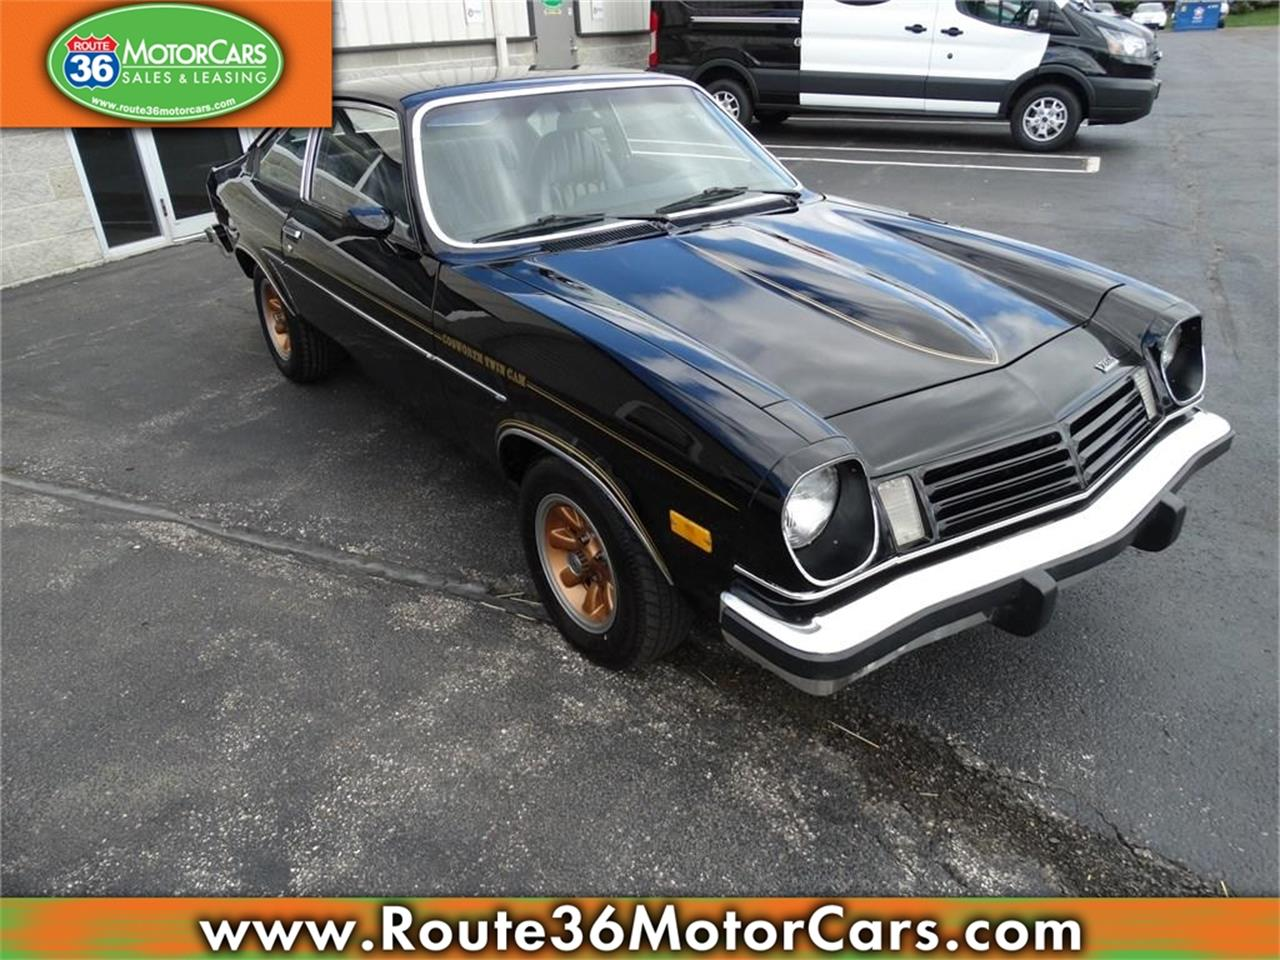 Large Picture of '75 Chevrolet Vega located in Ohio - $10,475.00 - IKGX